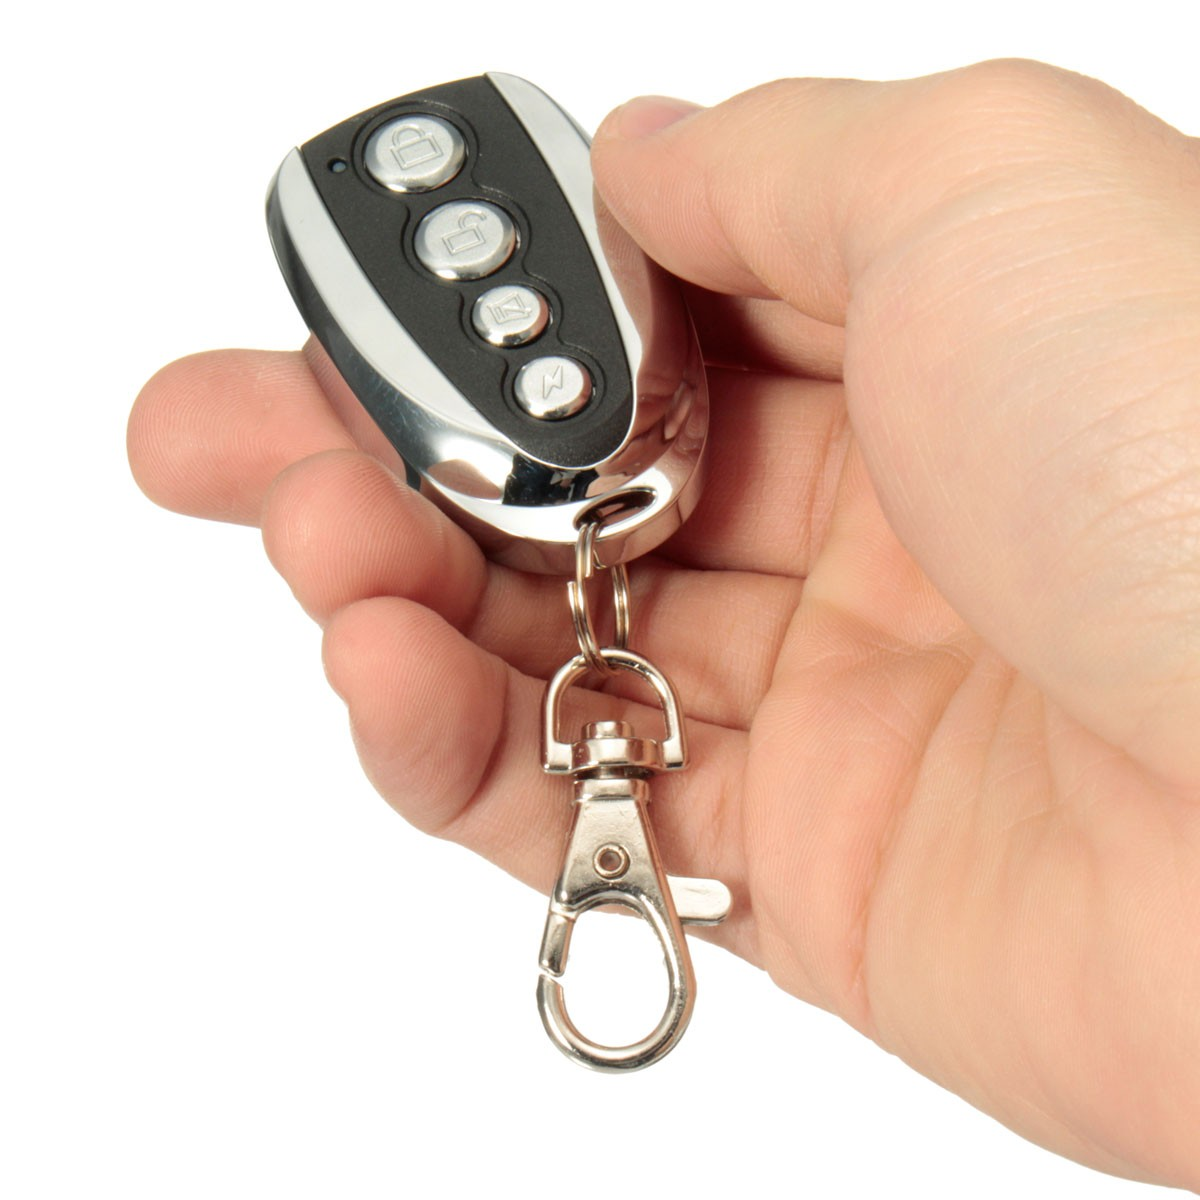 Universal 4 Buttons 433mhz Garage Door Remote Control Key Fob Bft